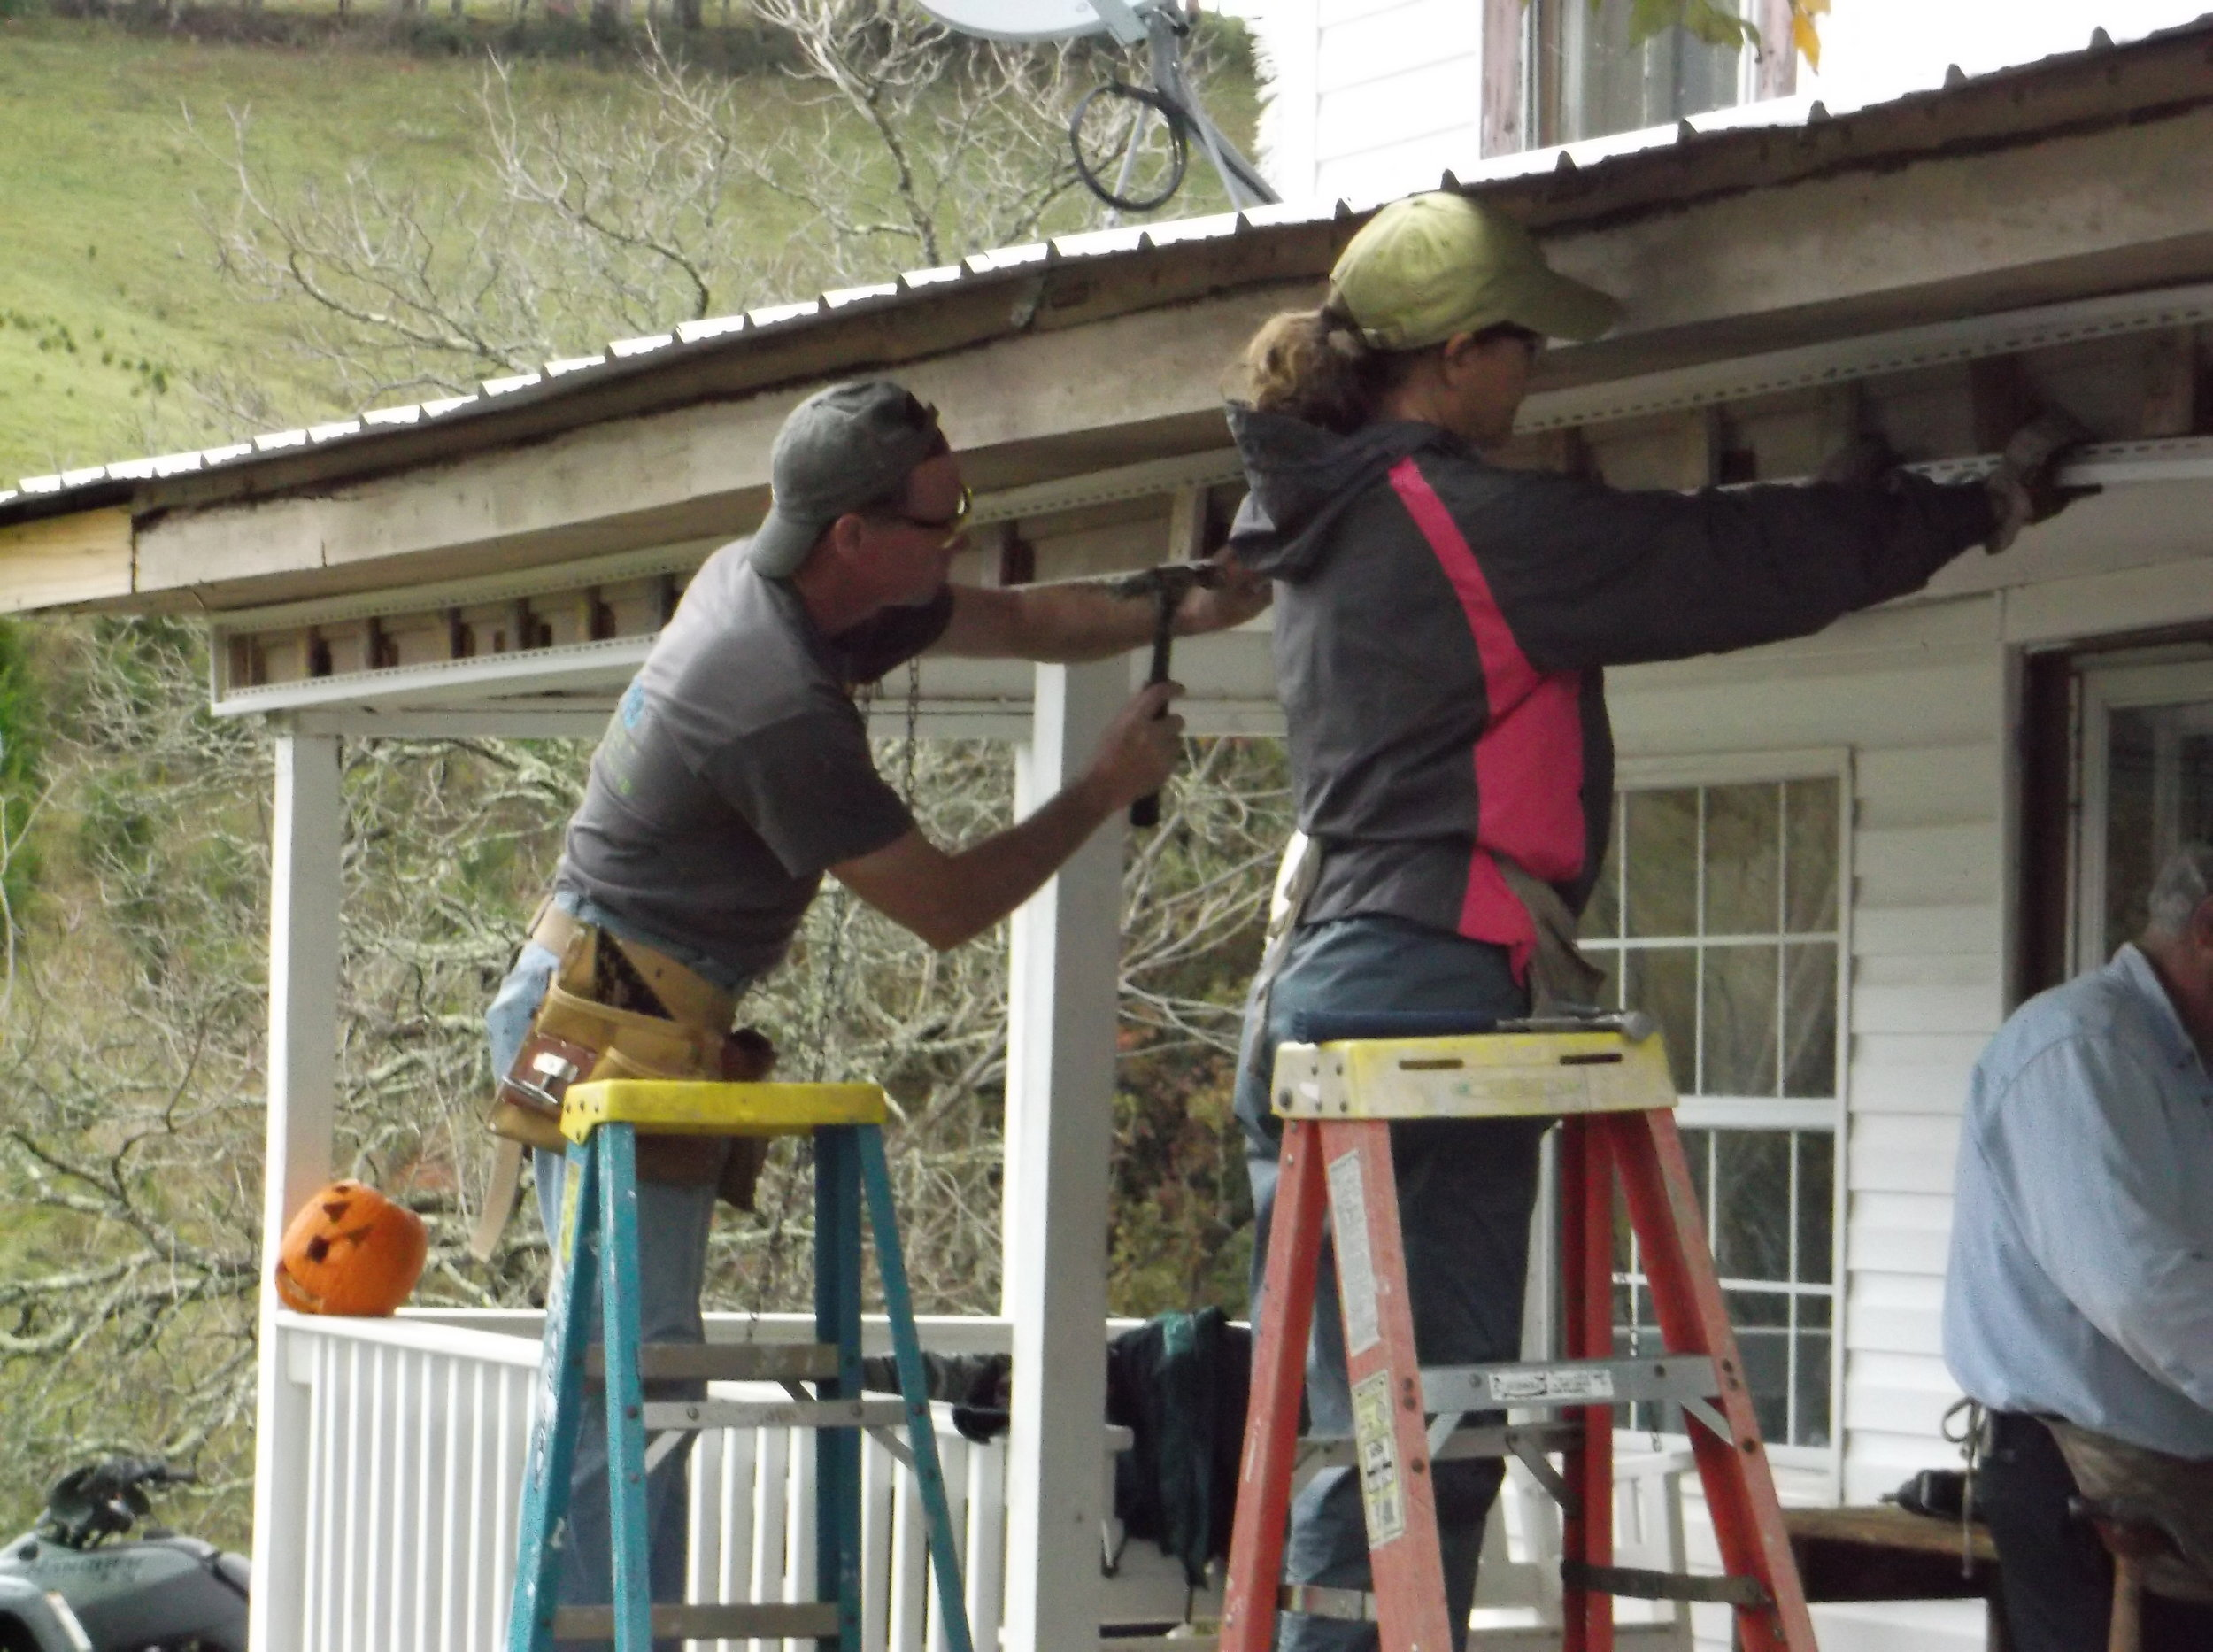 Appalachia Service Project:  Annual Adult Work Tour to help build and repair homes in the Appalachia Mountains. Contact the church office for more information.